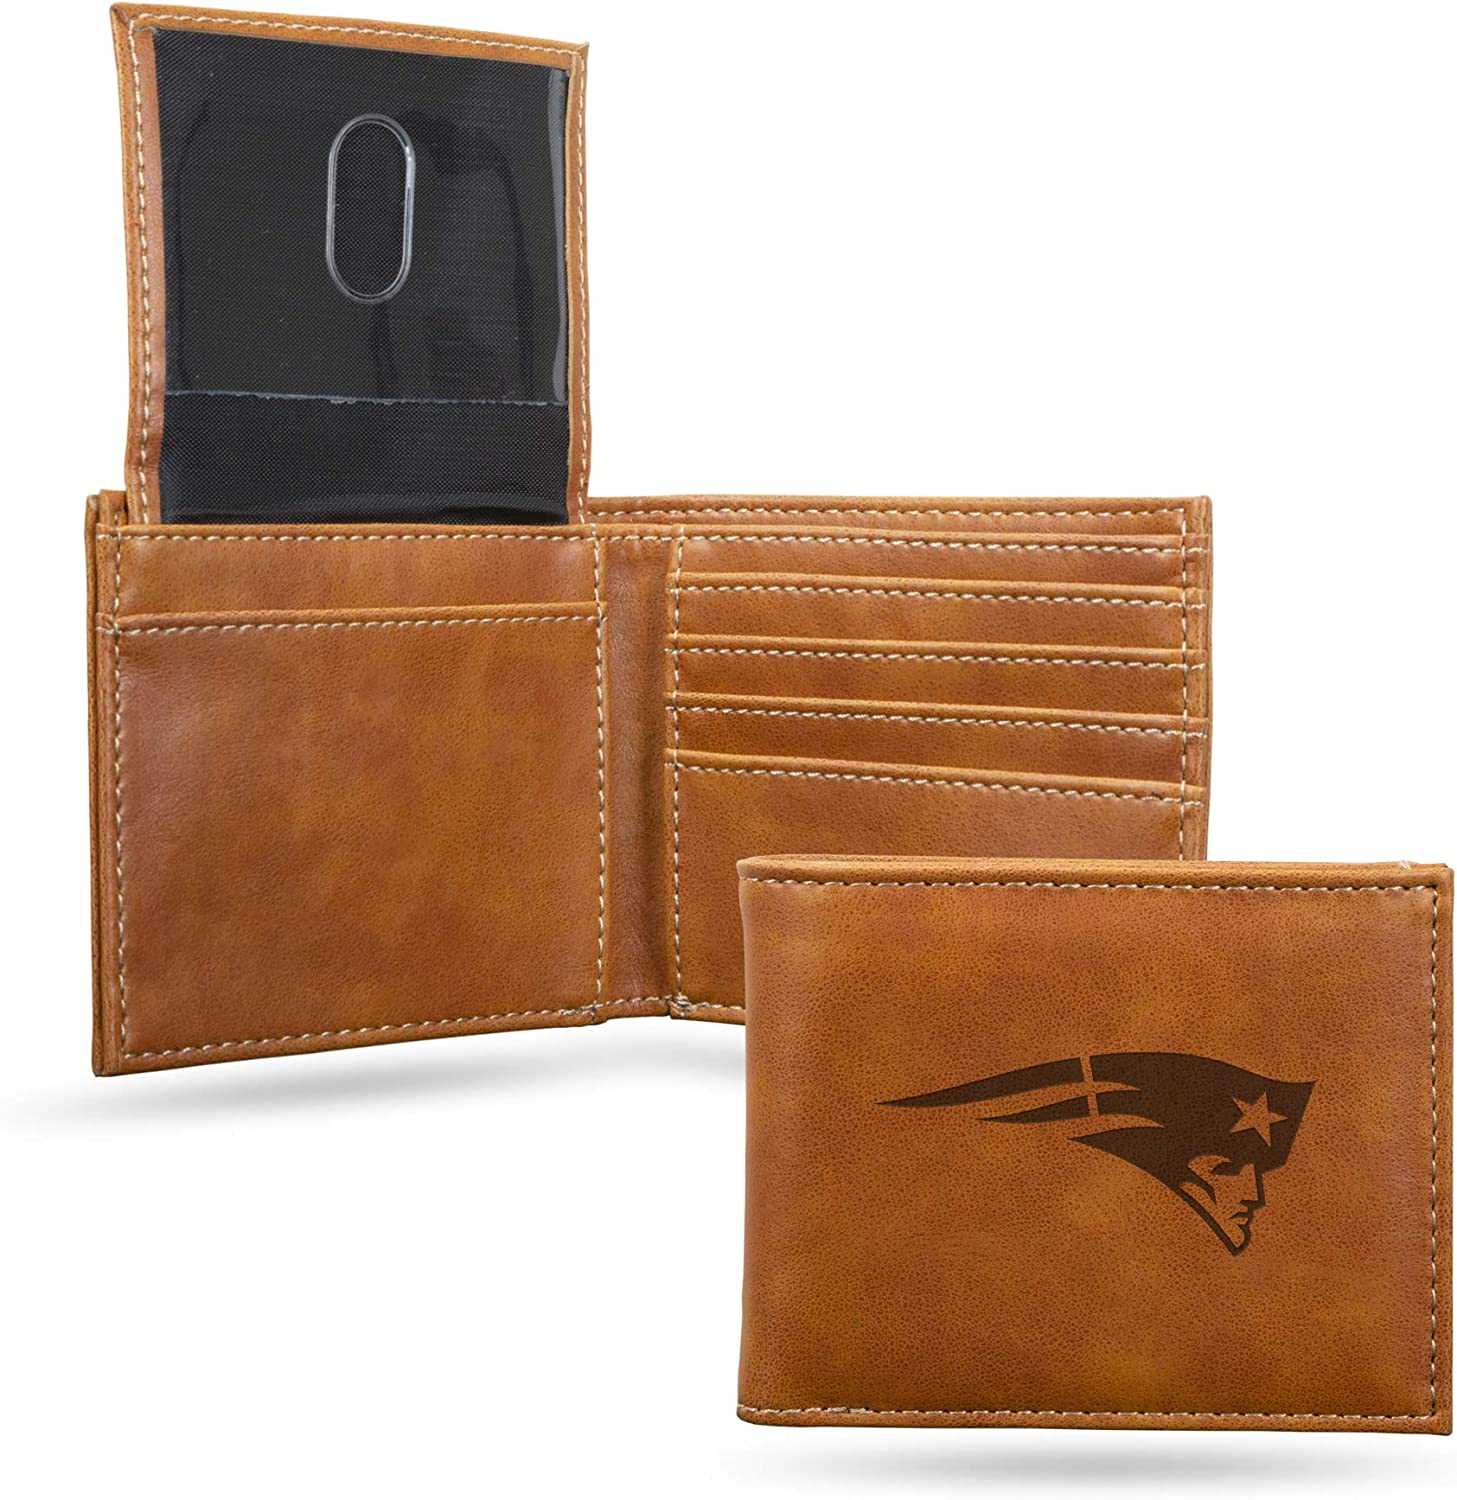 NFL 2021 Free Shipping Cheap Bargain Gift autumn and winter new Rico Industries Laser Engraved Wallet New Billfold England